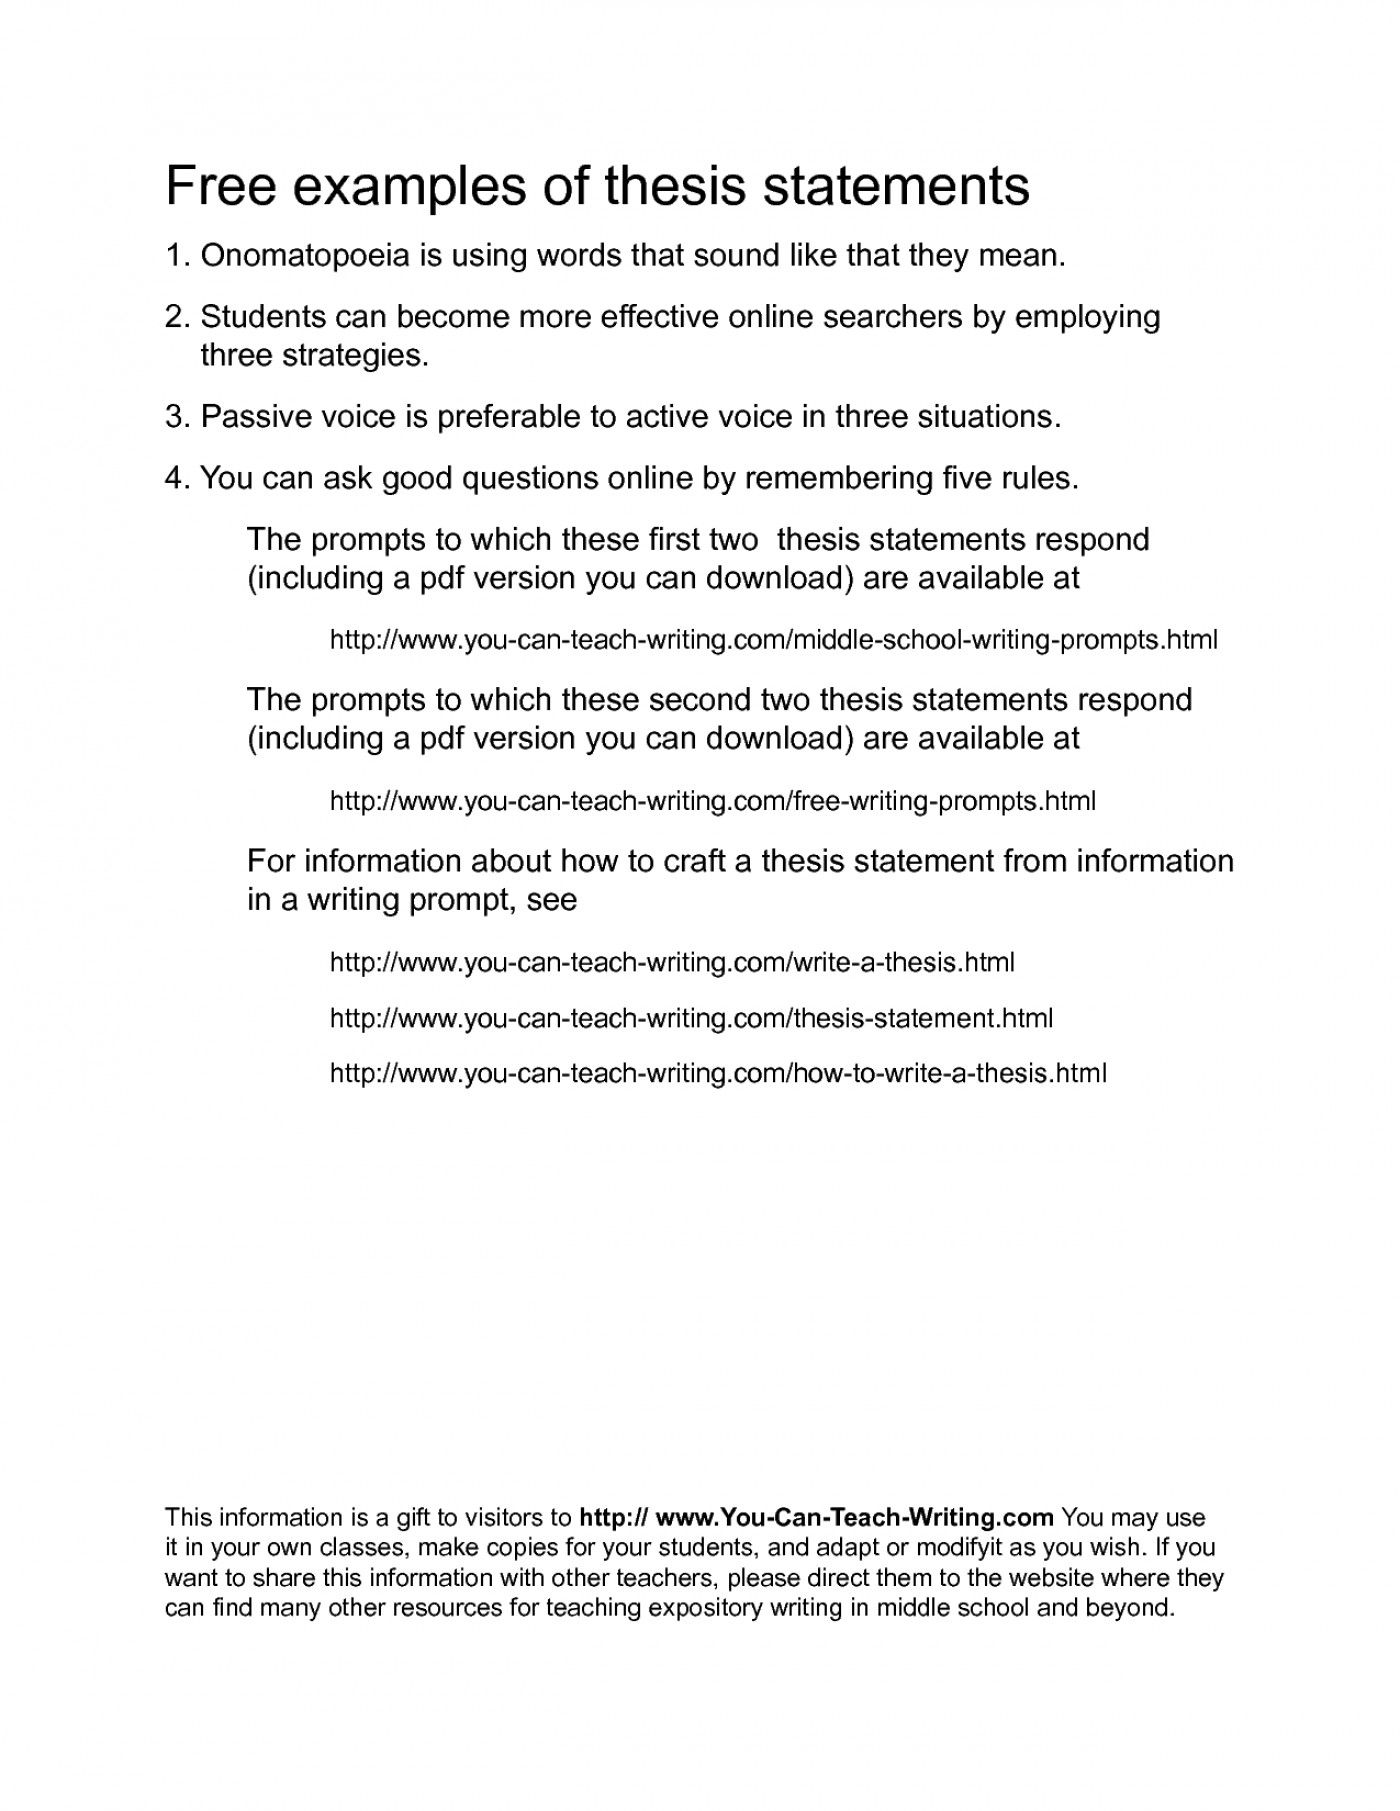 Essay On High School Experience  Example Of A College Essay Paper also Synthesis Essay Prompt Examples Of Argumentative Thesis Statements For Essays  Thesis Statement Examples For Persuasive Essays